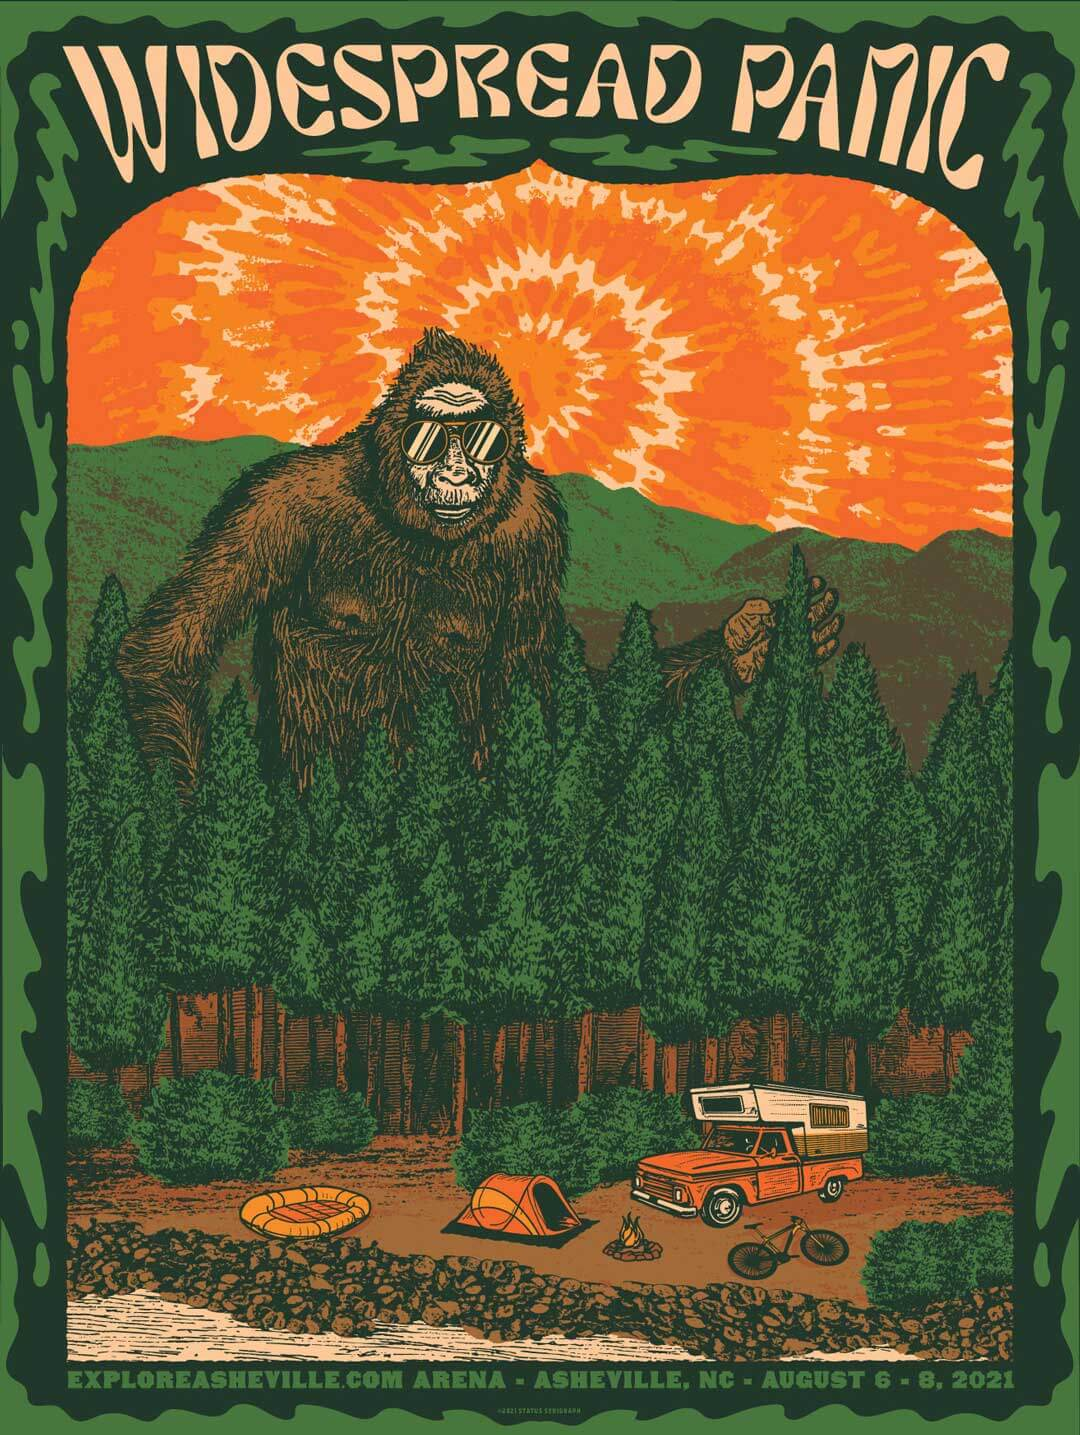 Widespread Panic Poster Asheville 2021 by Justin Helton